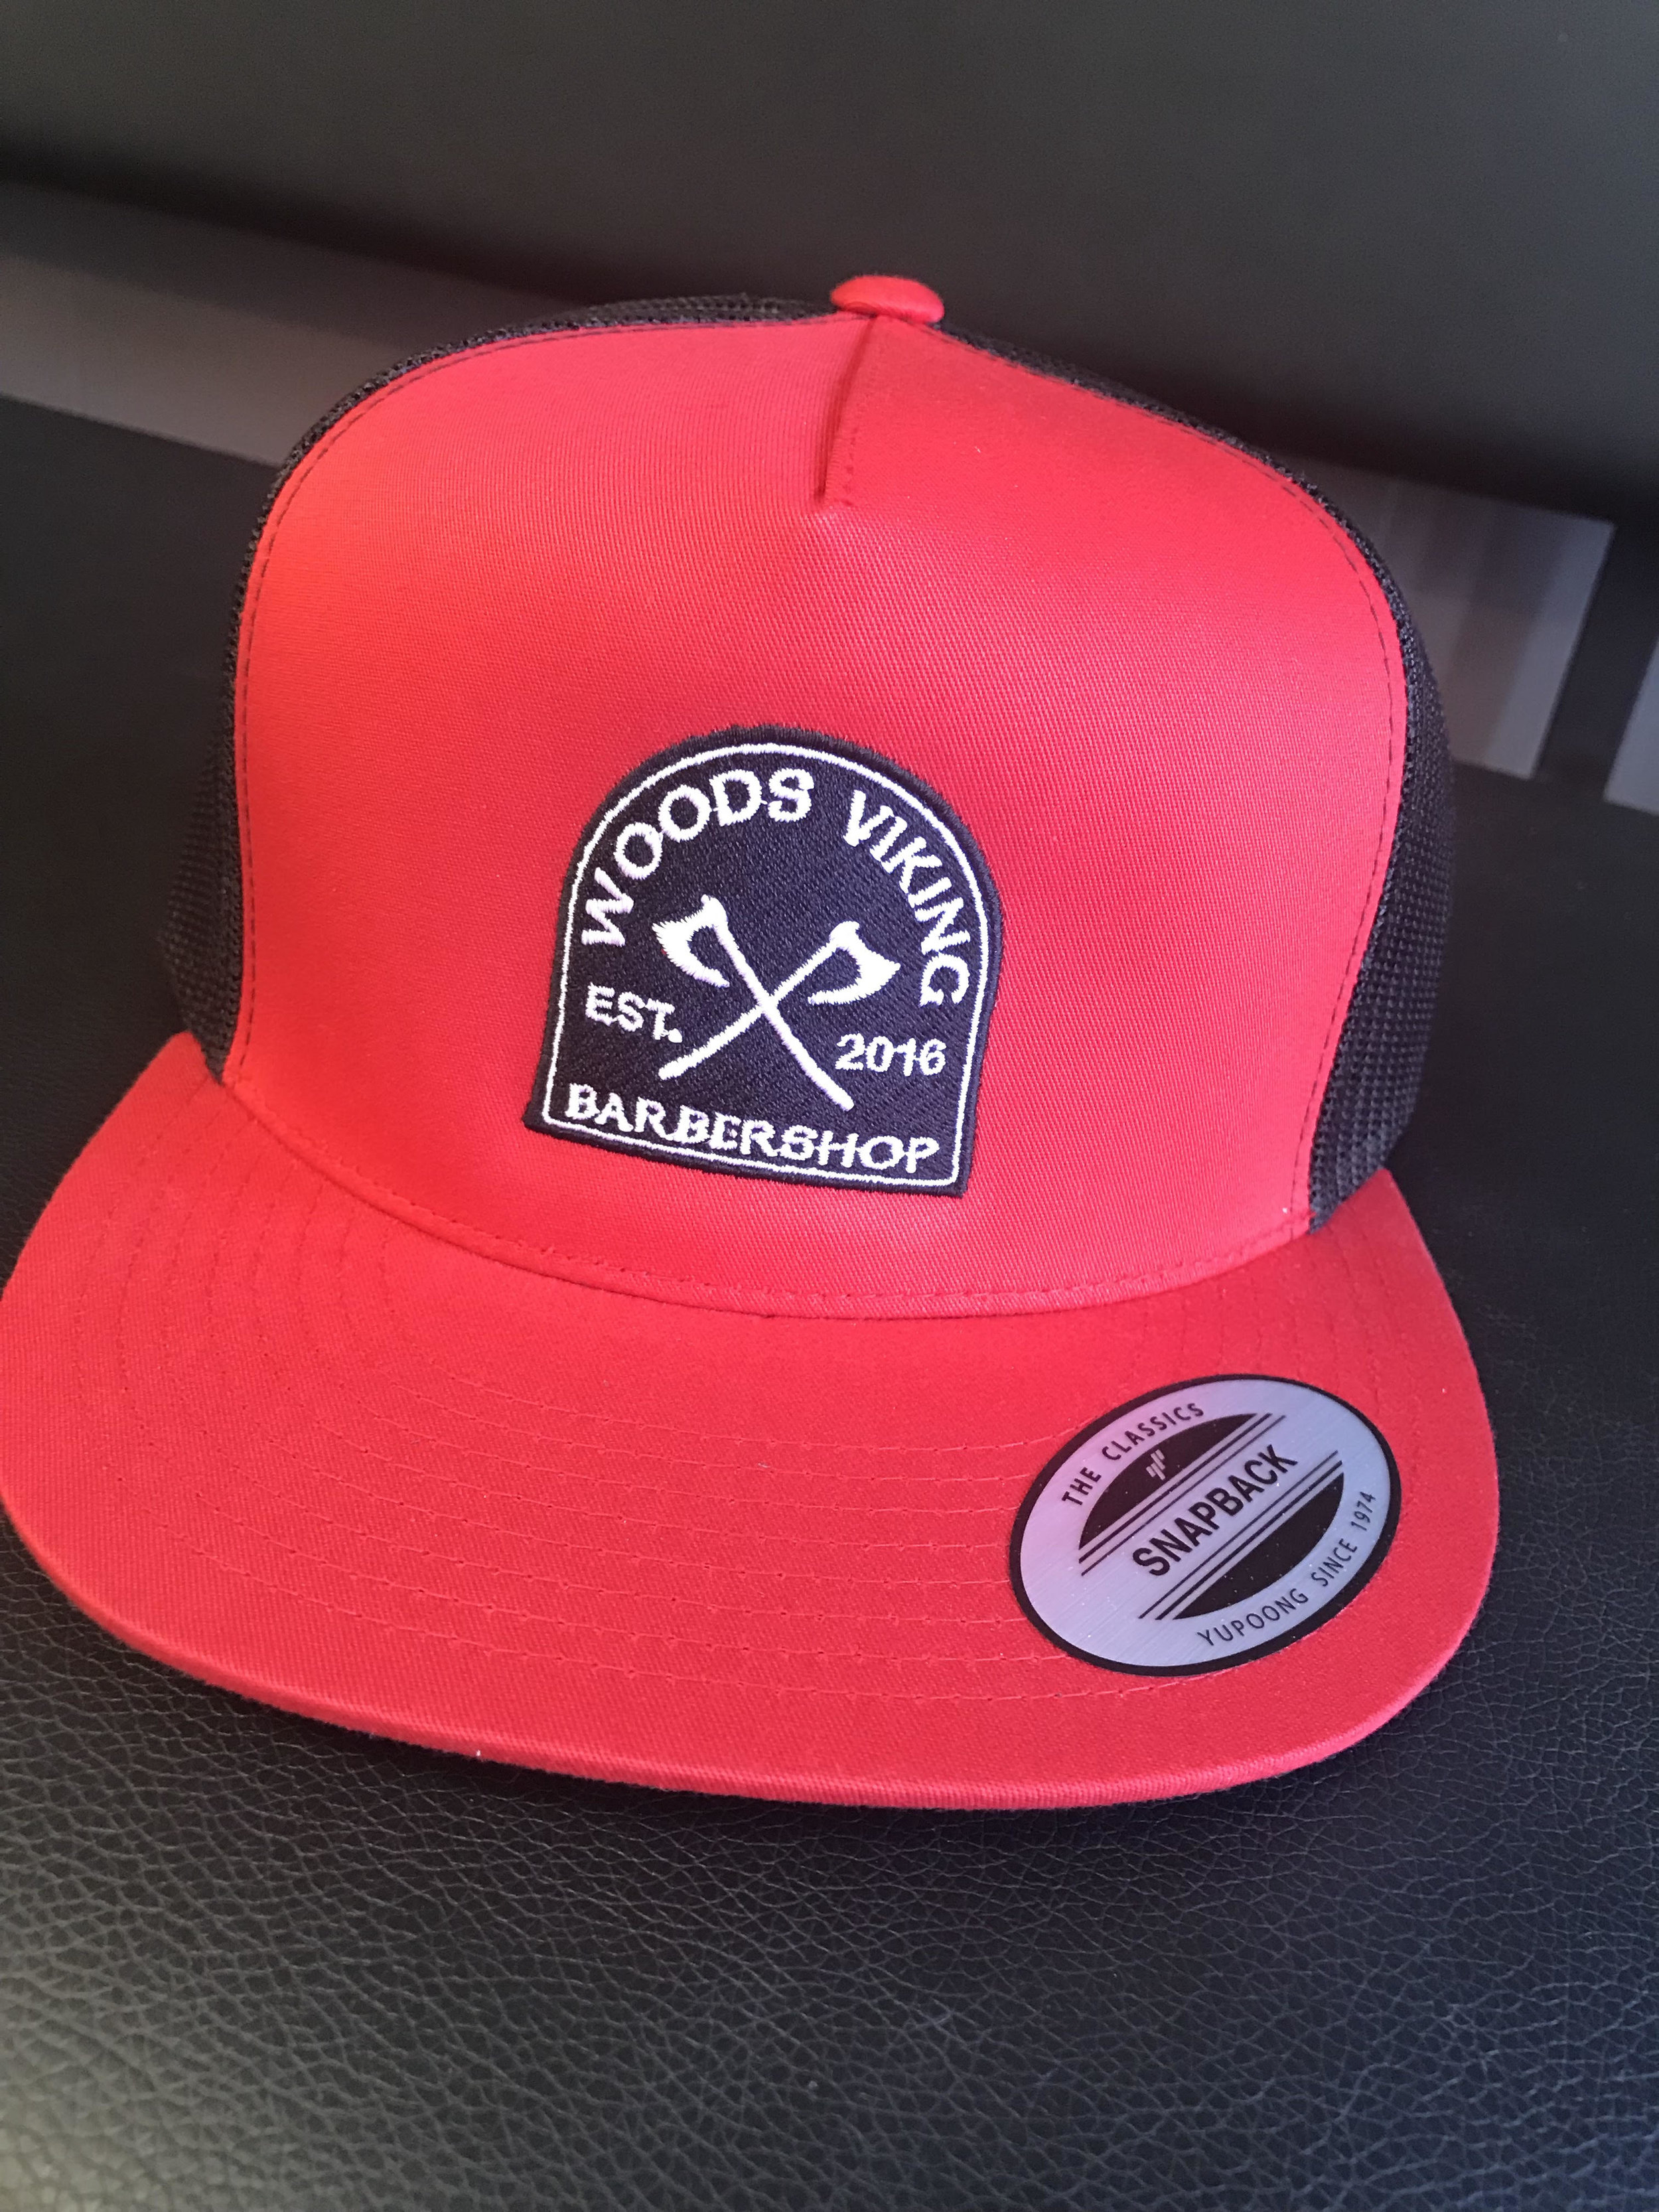 Products and apparel. - I have created designs for all sorts of different product and apparel. My most proud design was the patch for the hat (show above) this became very popular for the WoodsViking clientele and has generated a lot of sales.